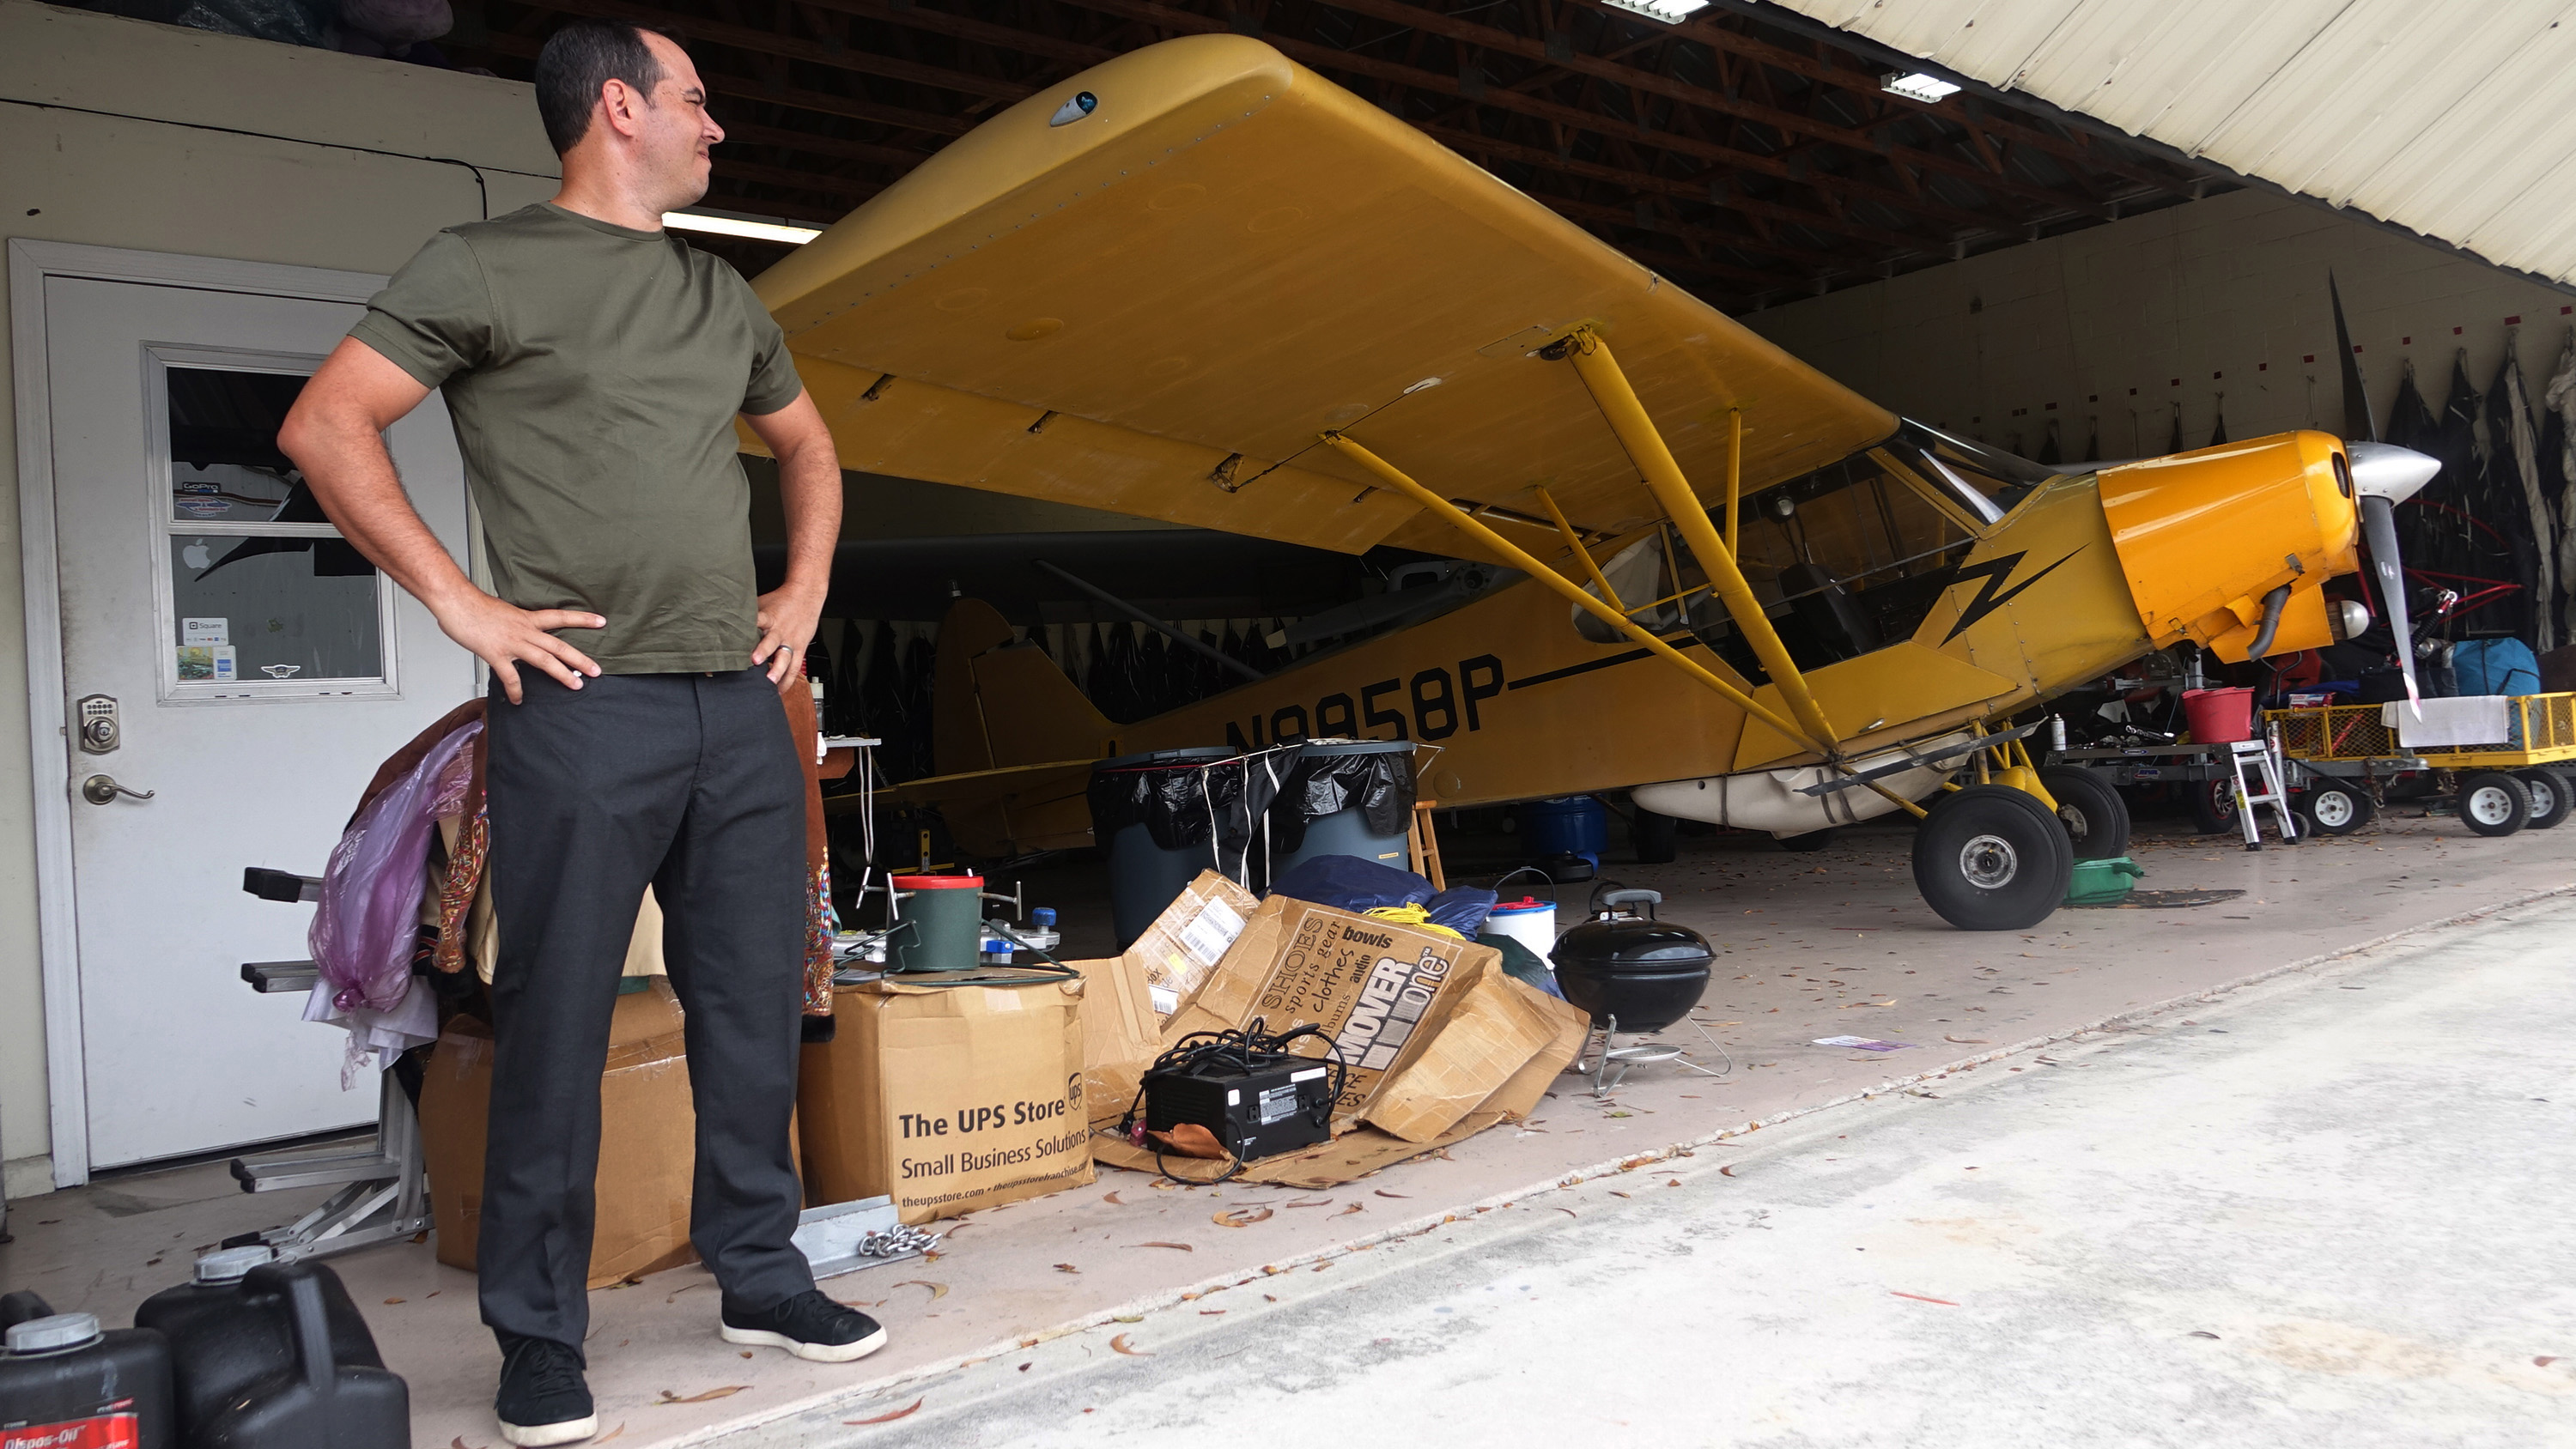 Jorge Gonzalez, of Skywords Advertising, is seen with his Piper Super Cub at the hangar he rents at Lantana Airport. Gonzalez said during a meeting with U.S. Rep. Lois Frankel that he might have to shutter his business if President Trump continues to visit Palm Beach and close the airspace on weekends. Courtesy of Joe Cavaretta, Fort Lauderdale Sun-Sentinel.